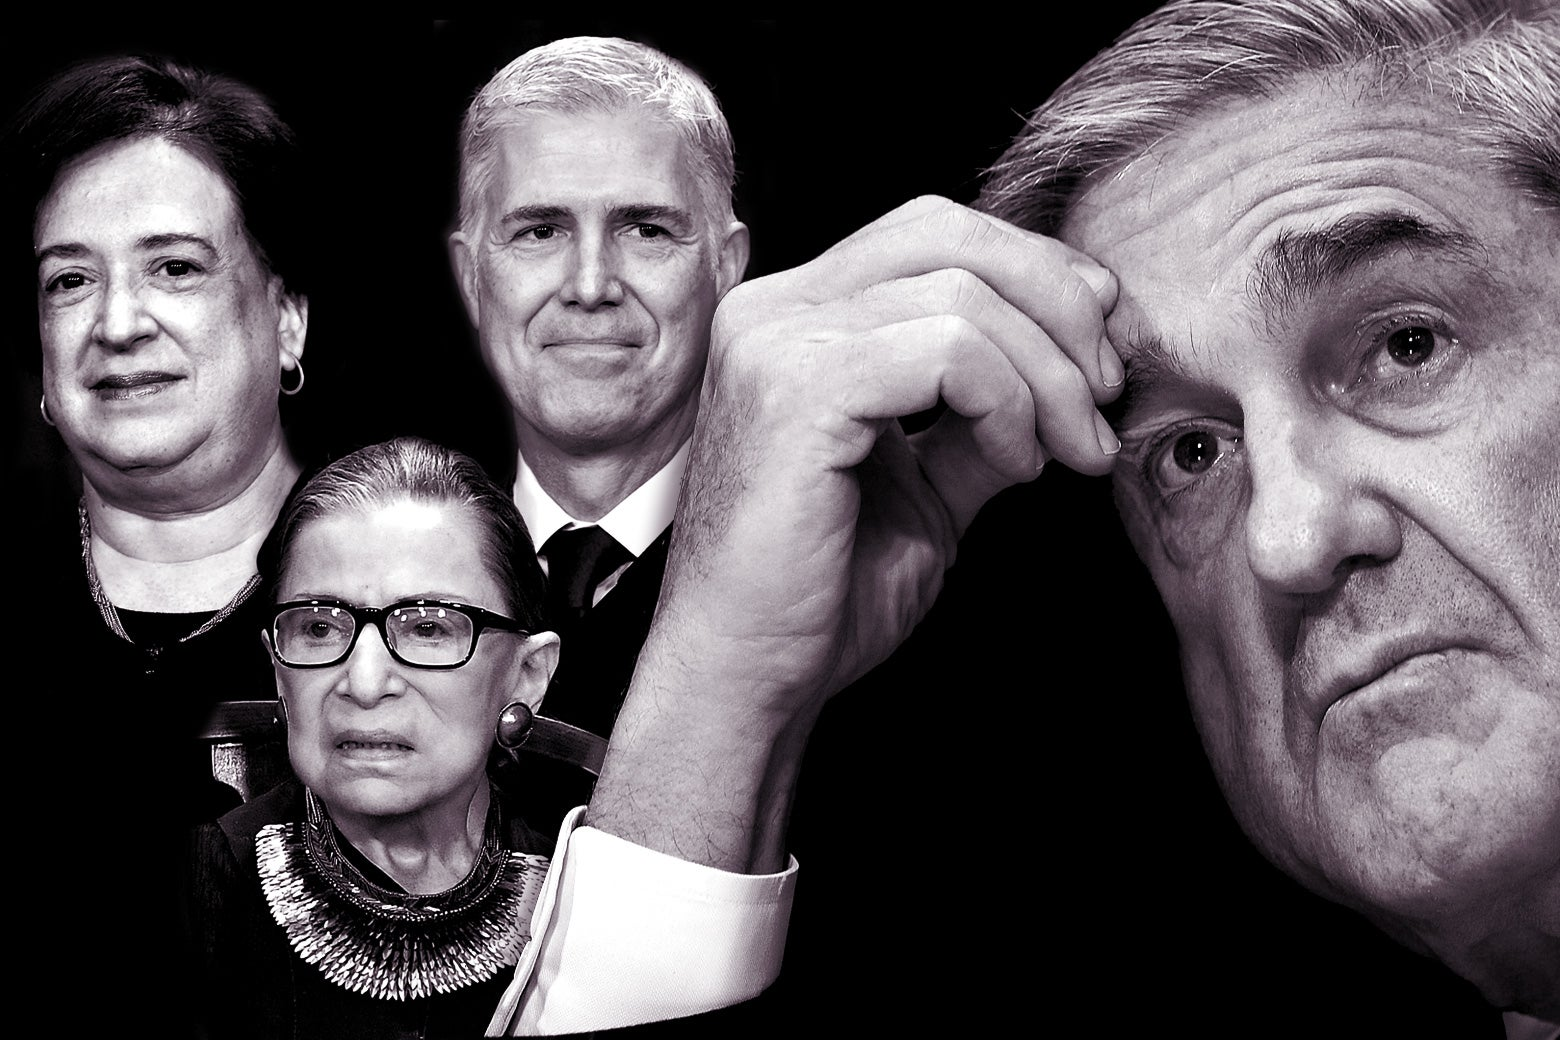 Elena Kagan, Ruth Bader Ginsburg, Neil Gorsuch, and Robert Mueller.